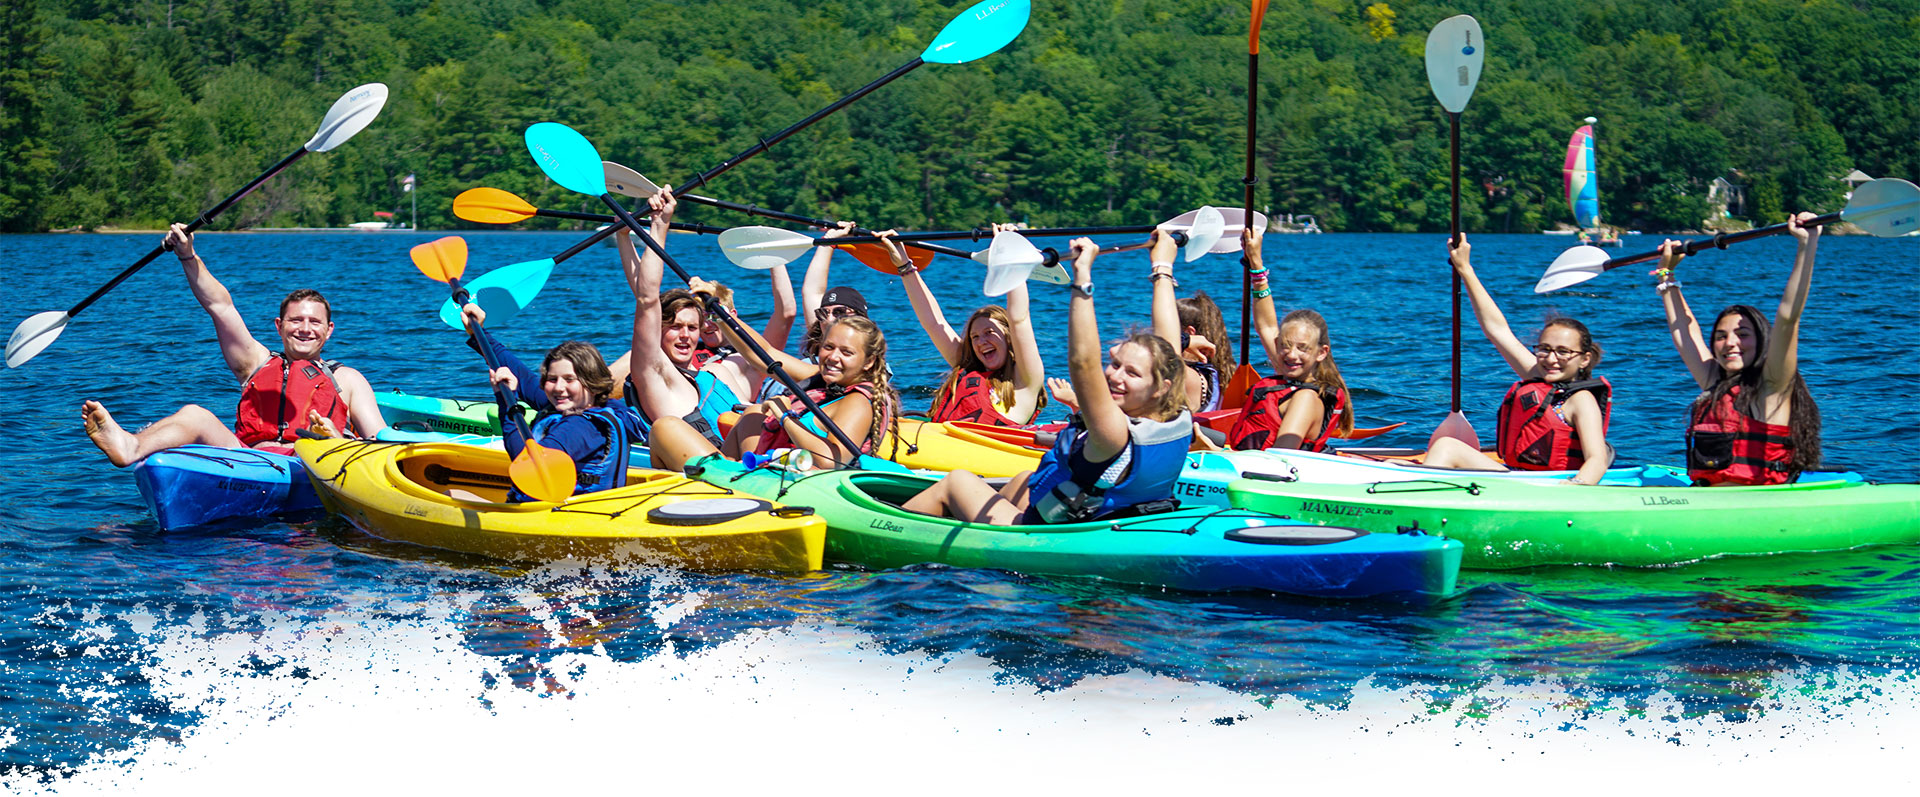 Dates and fees for summer sleep away camp in Maine